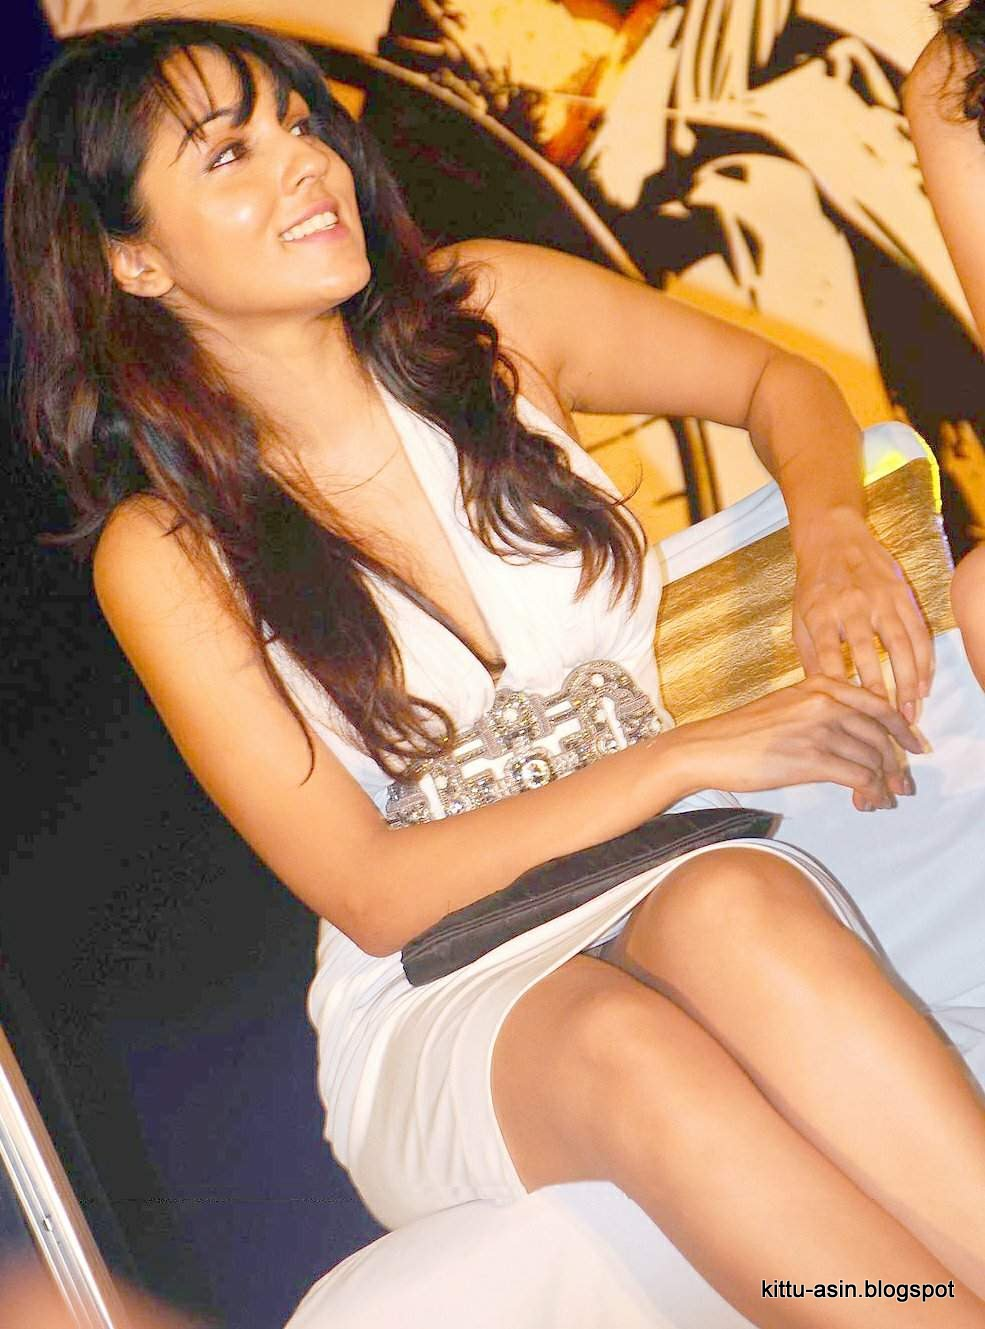 Hingis upskirt photos-5613